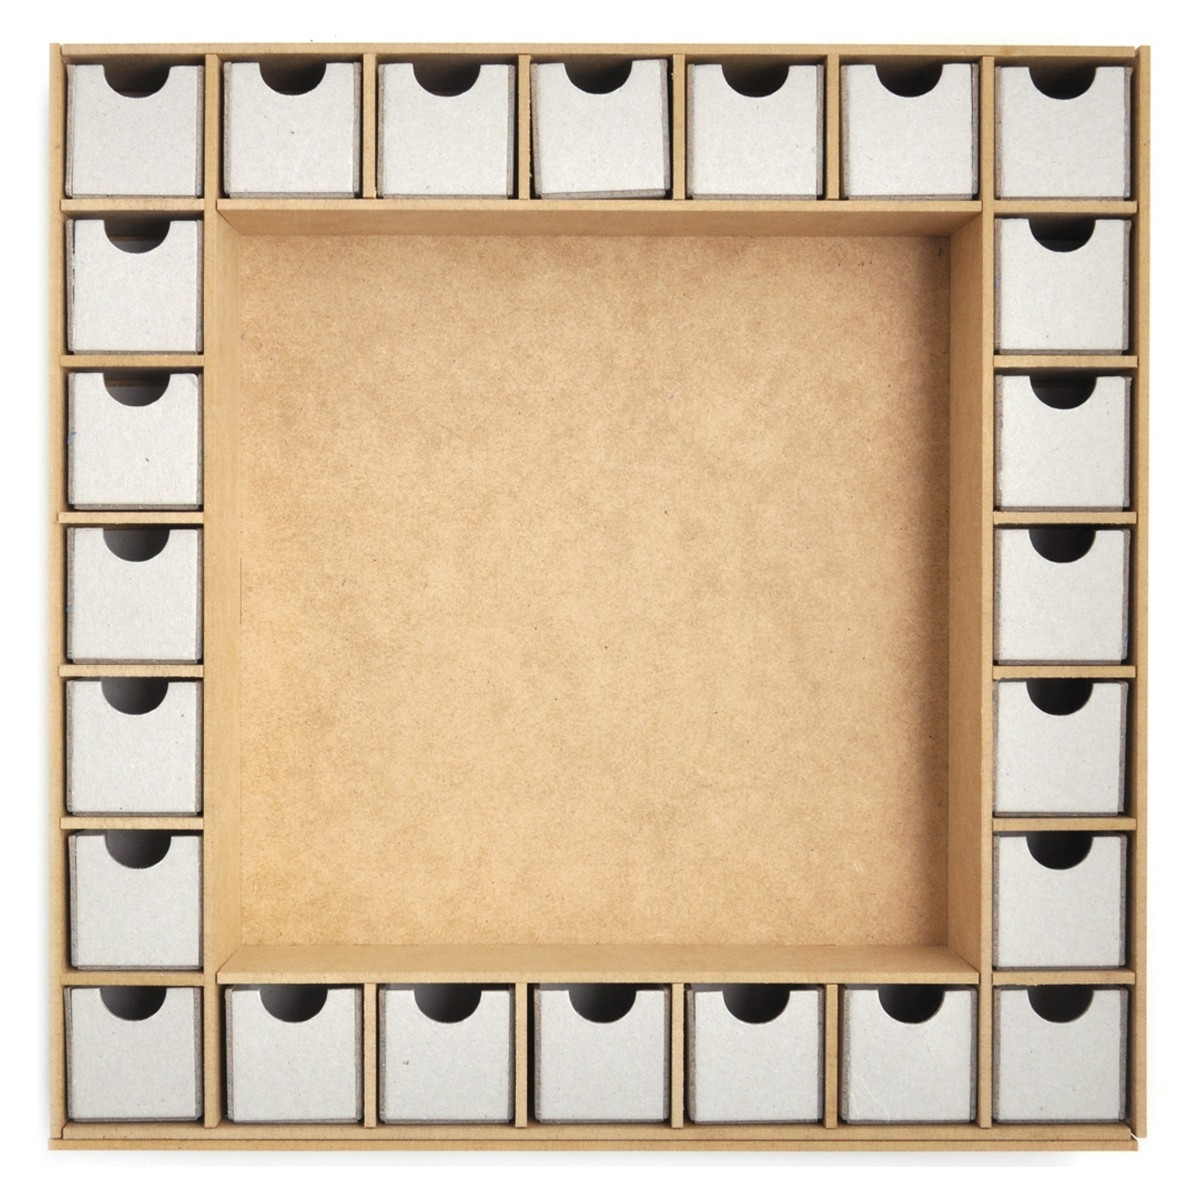 Beyond The Page Mdf Square Shadow Box Advent Calendar  Beyond The Page Mdf Advent Calendar